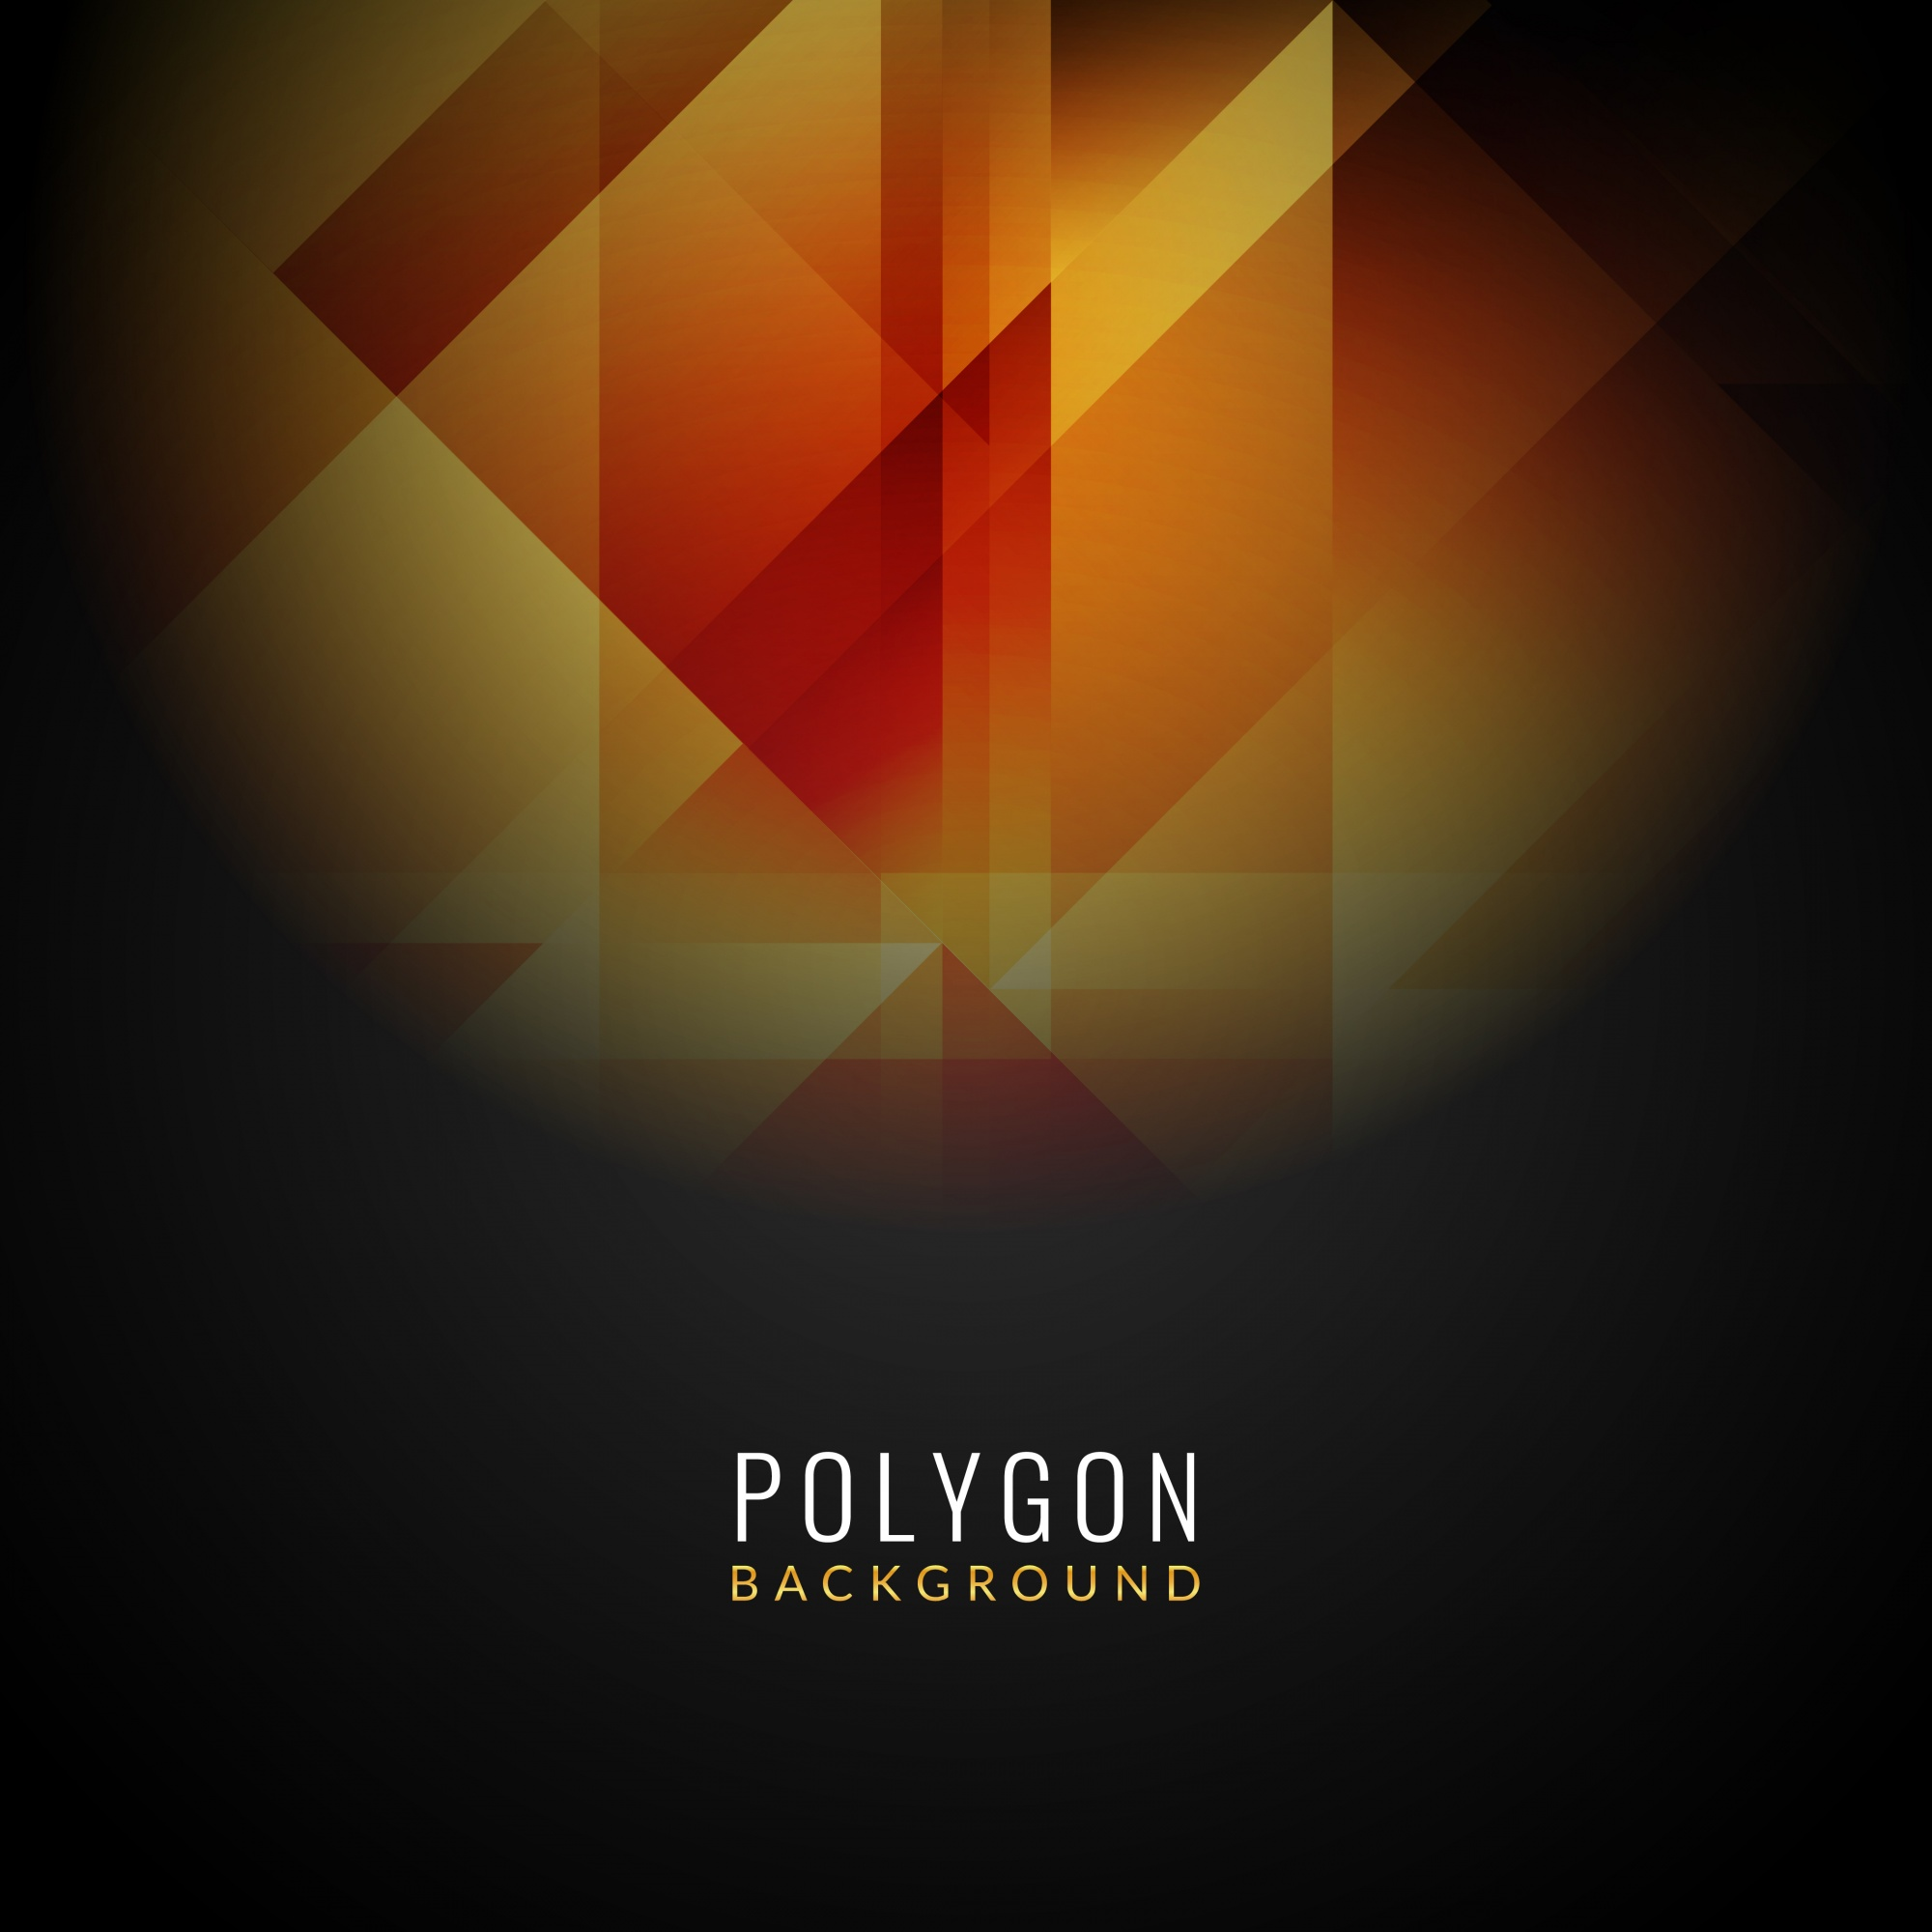 Abstract modern polygonal background